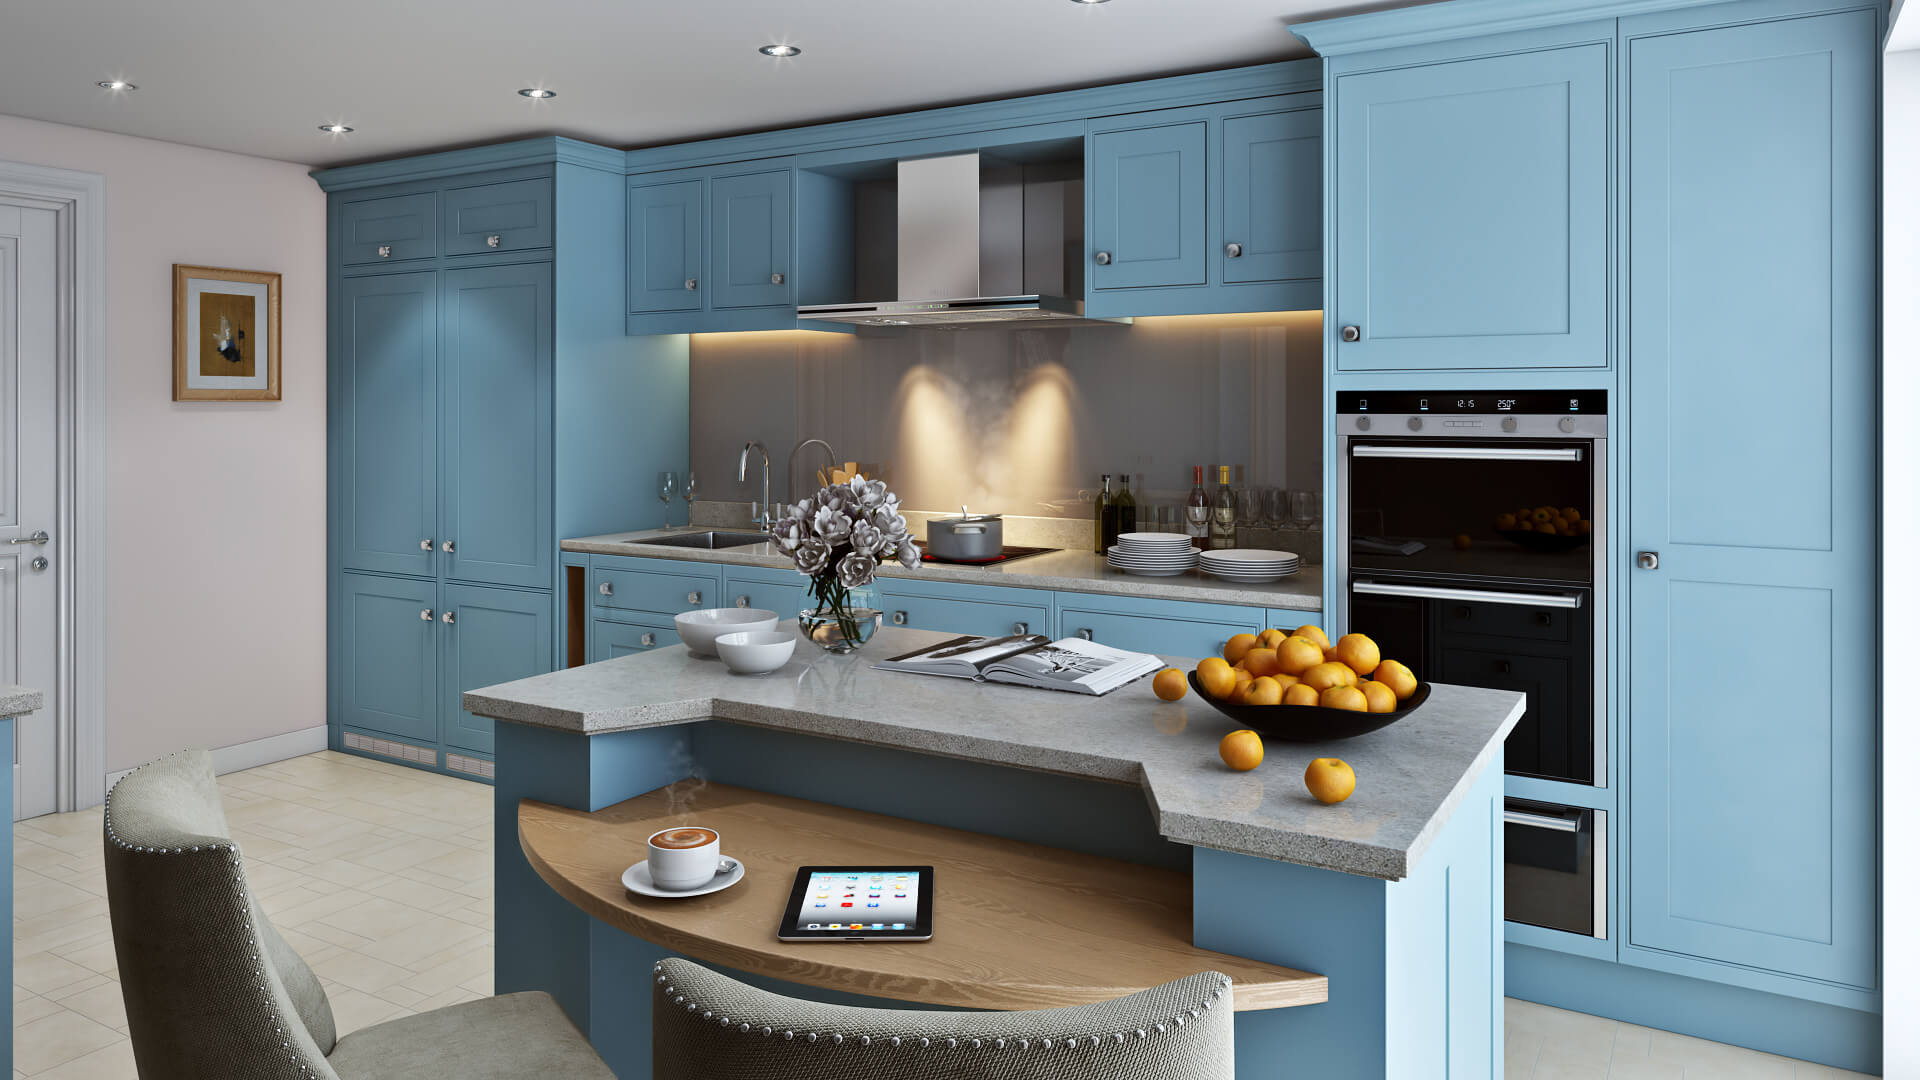 3D Rendering Services Kitchen Project: Simple, Practical and Utterly Elegant: view01